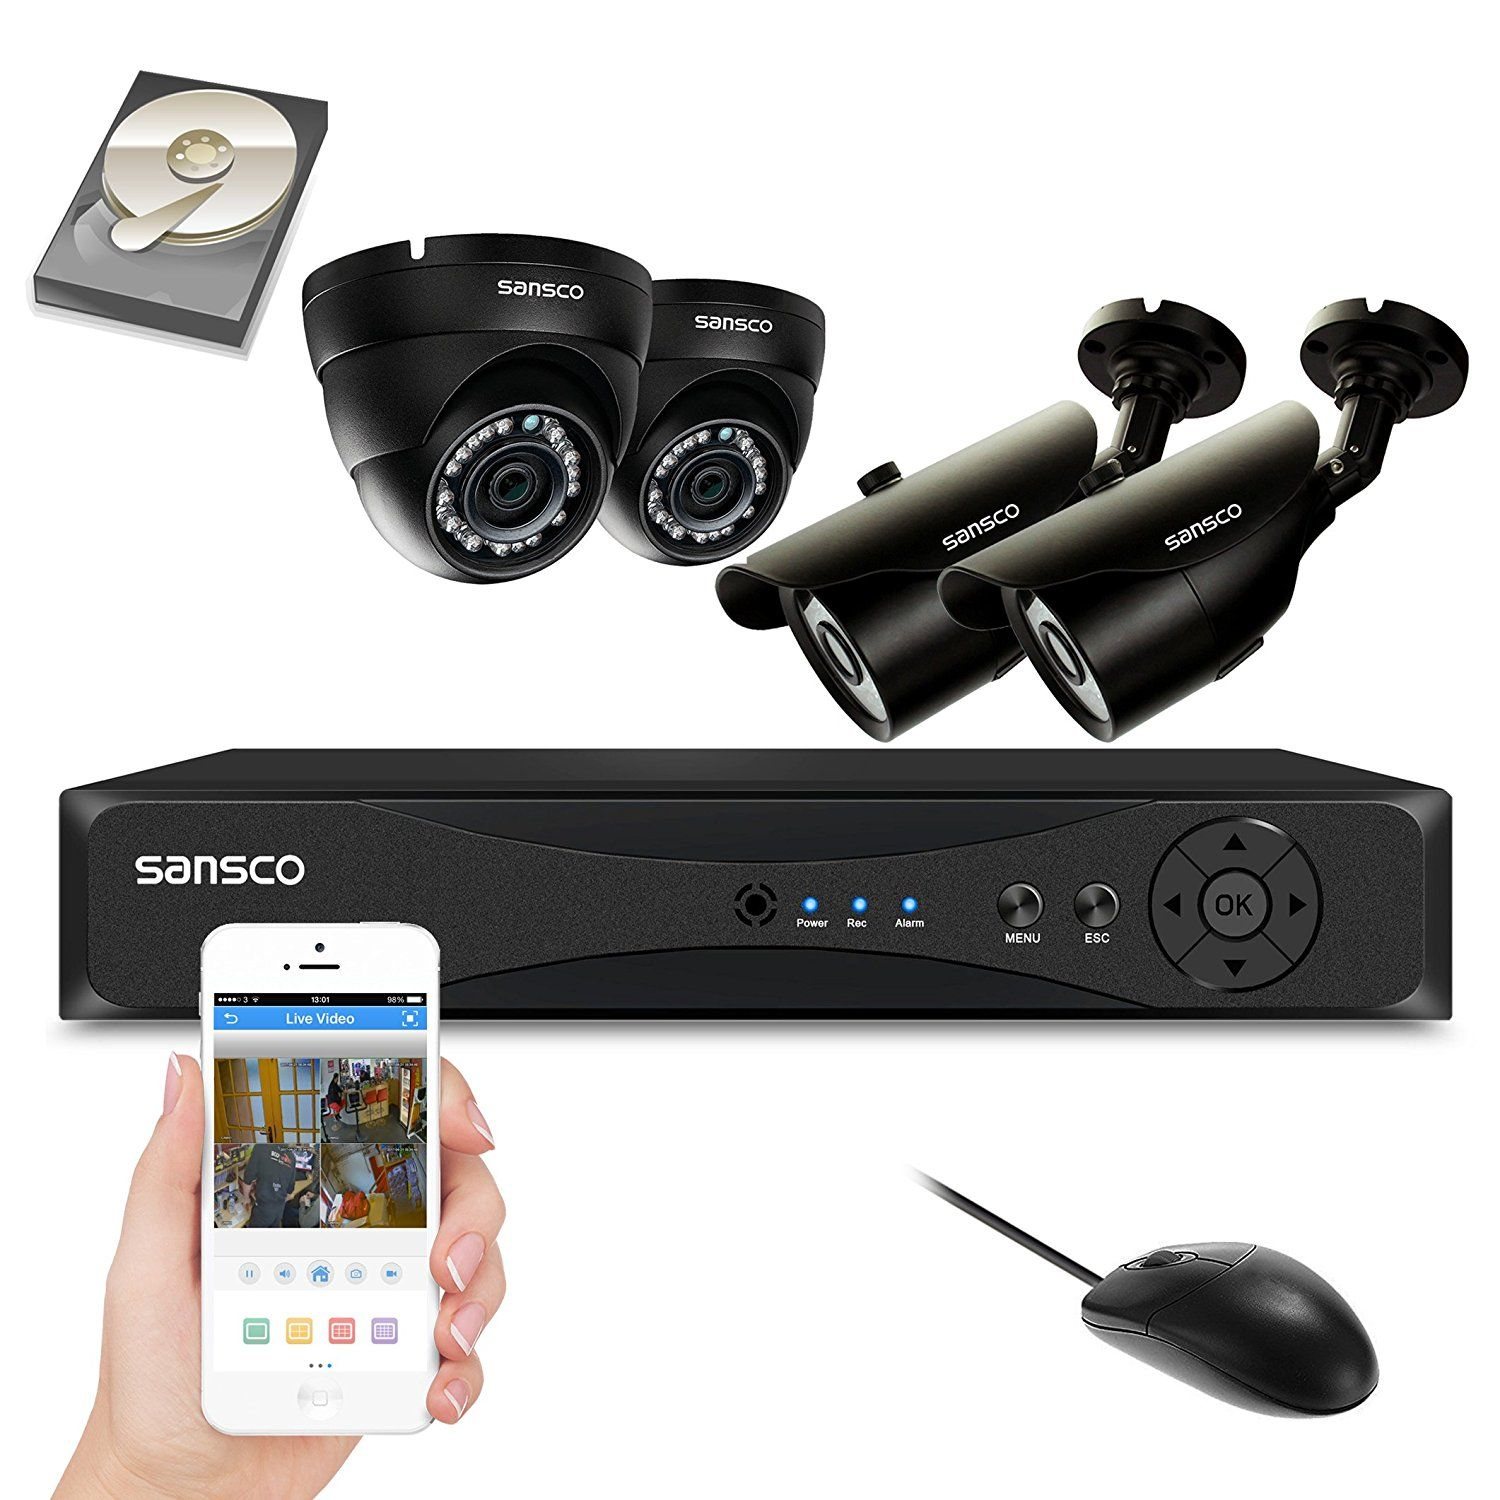 10 Top 10 Best Dvr Home Security System In 2017 Cctv Security Cameras Dome Camera Home Video Surveillance